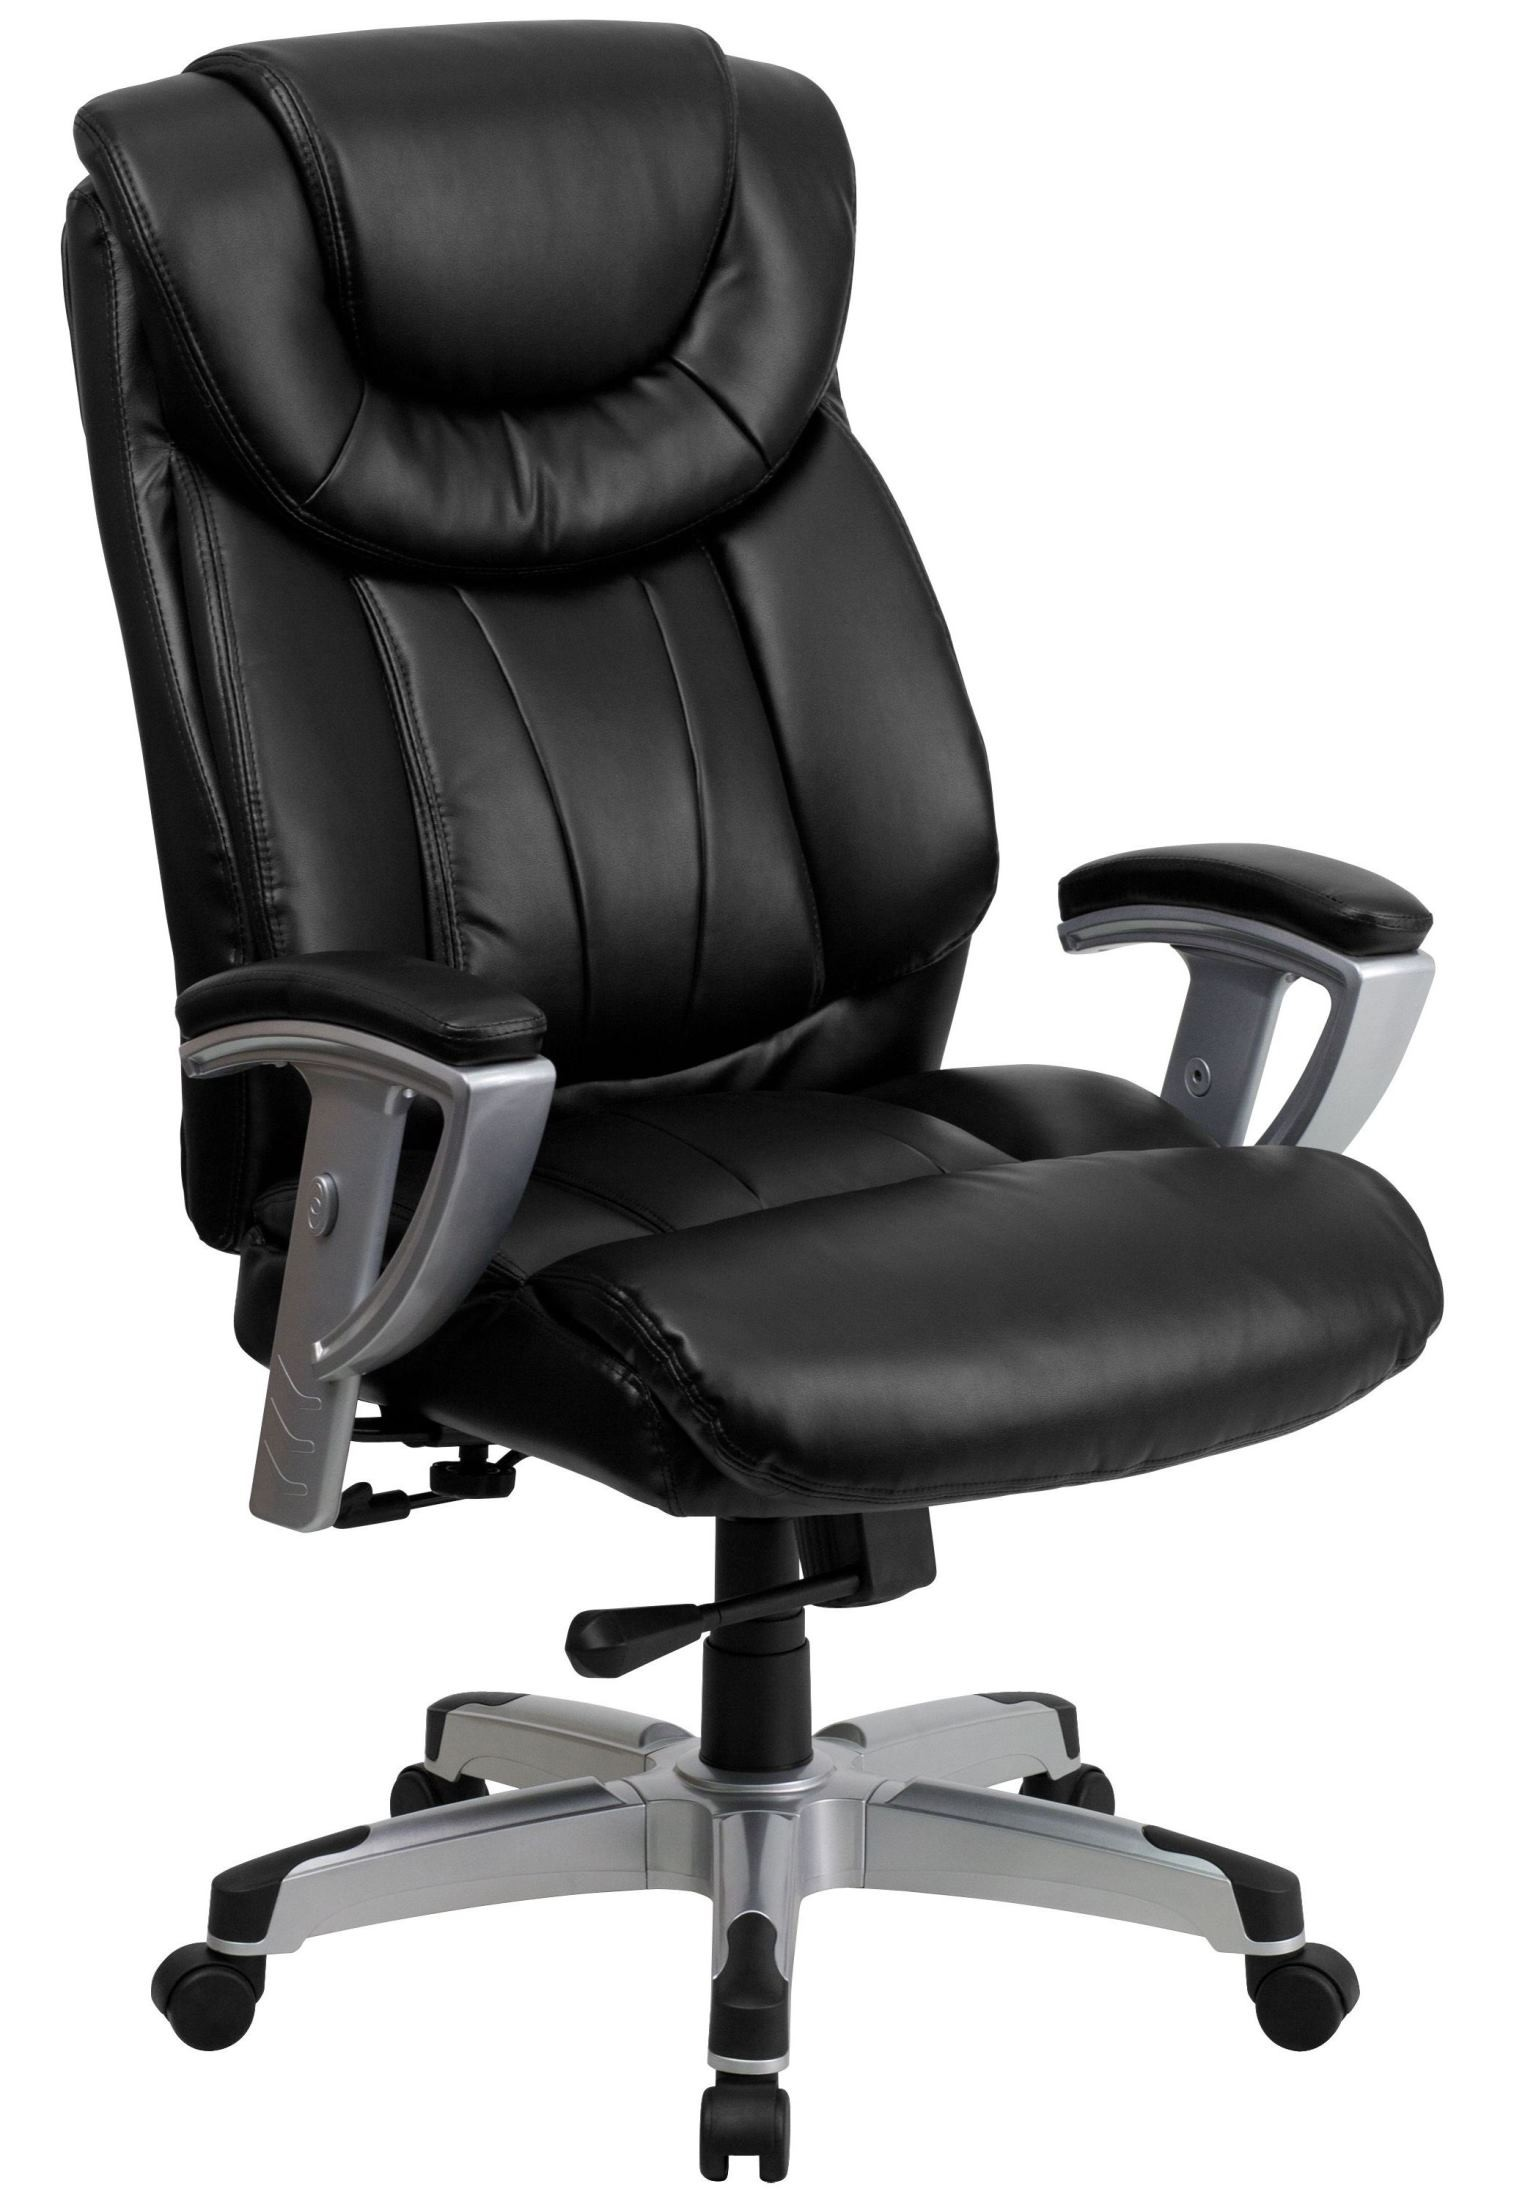 1534 hercules series big tall black leather arm office chair from renegade go 1534 bk lea gg. Black Bedroom Furniture Sets. Home Design Ideas